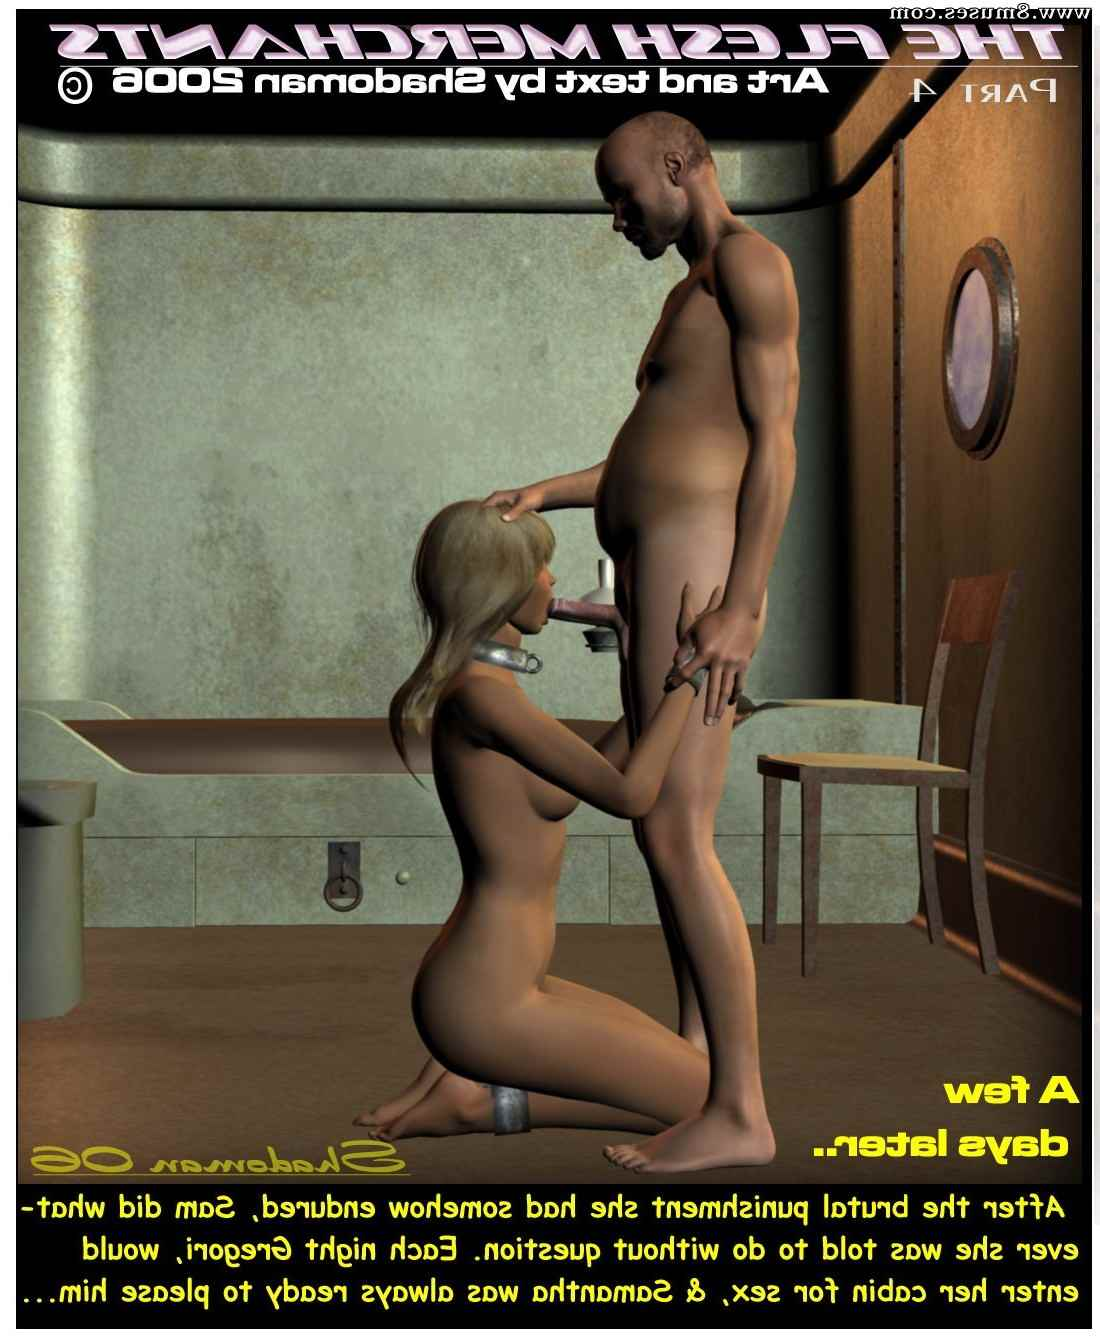 Shadoman-Comics/The-Flesh-Merchants The_Flesh_Merchants__8muses_-_Sex_and_Porn_Comics_4.jpg